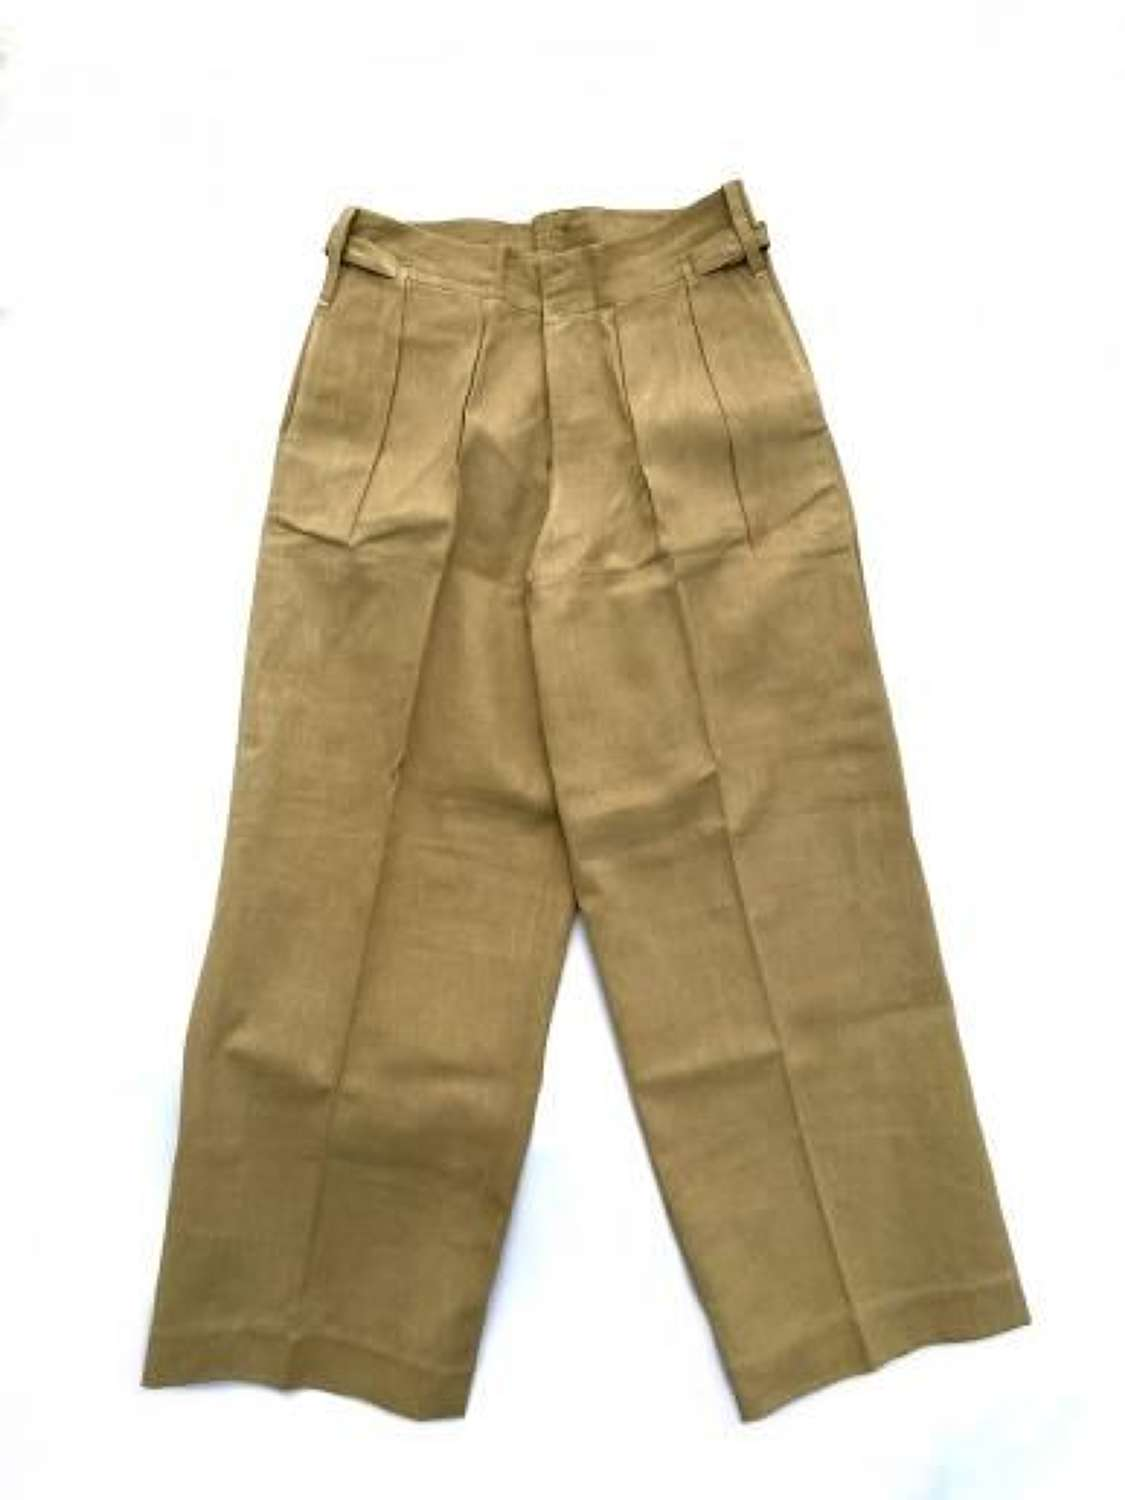 Original 1940s Theatre Made British Khaki Drill Trousers